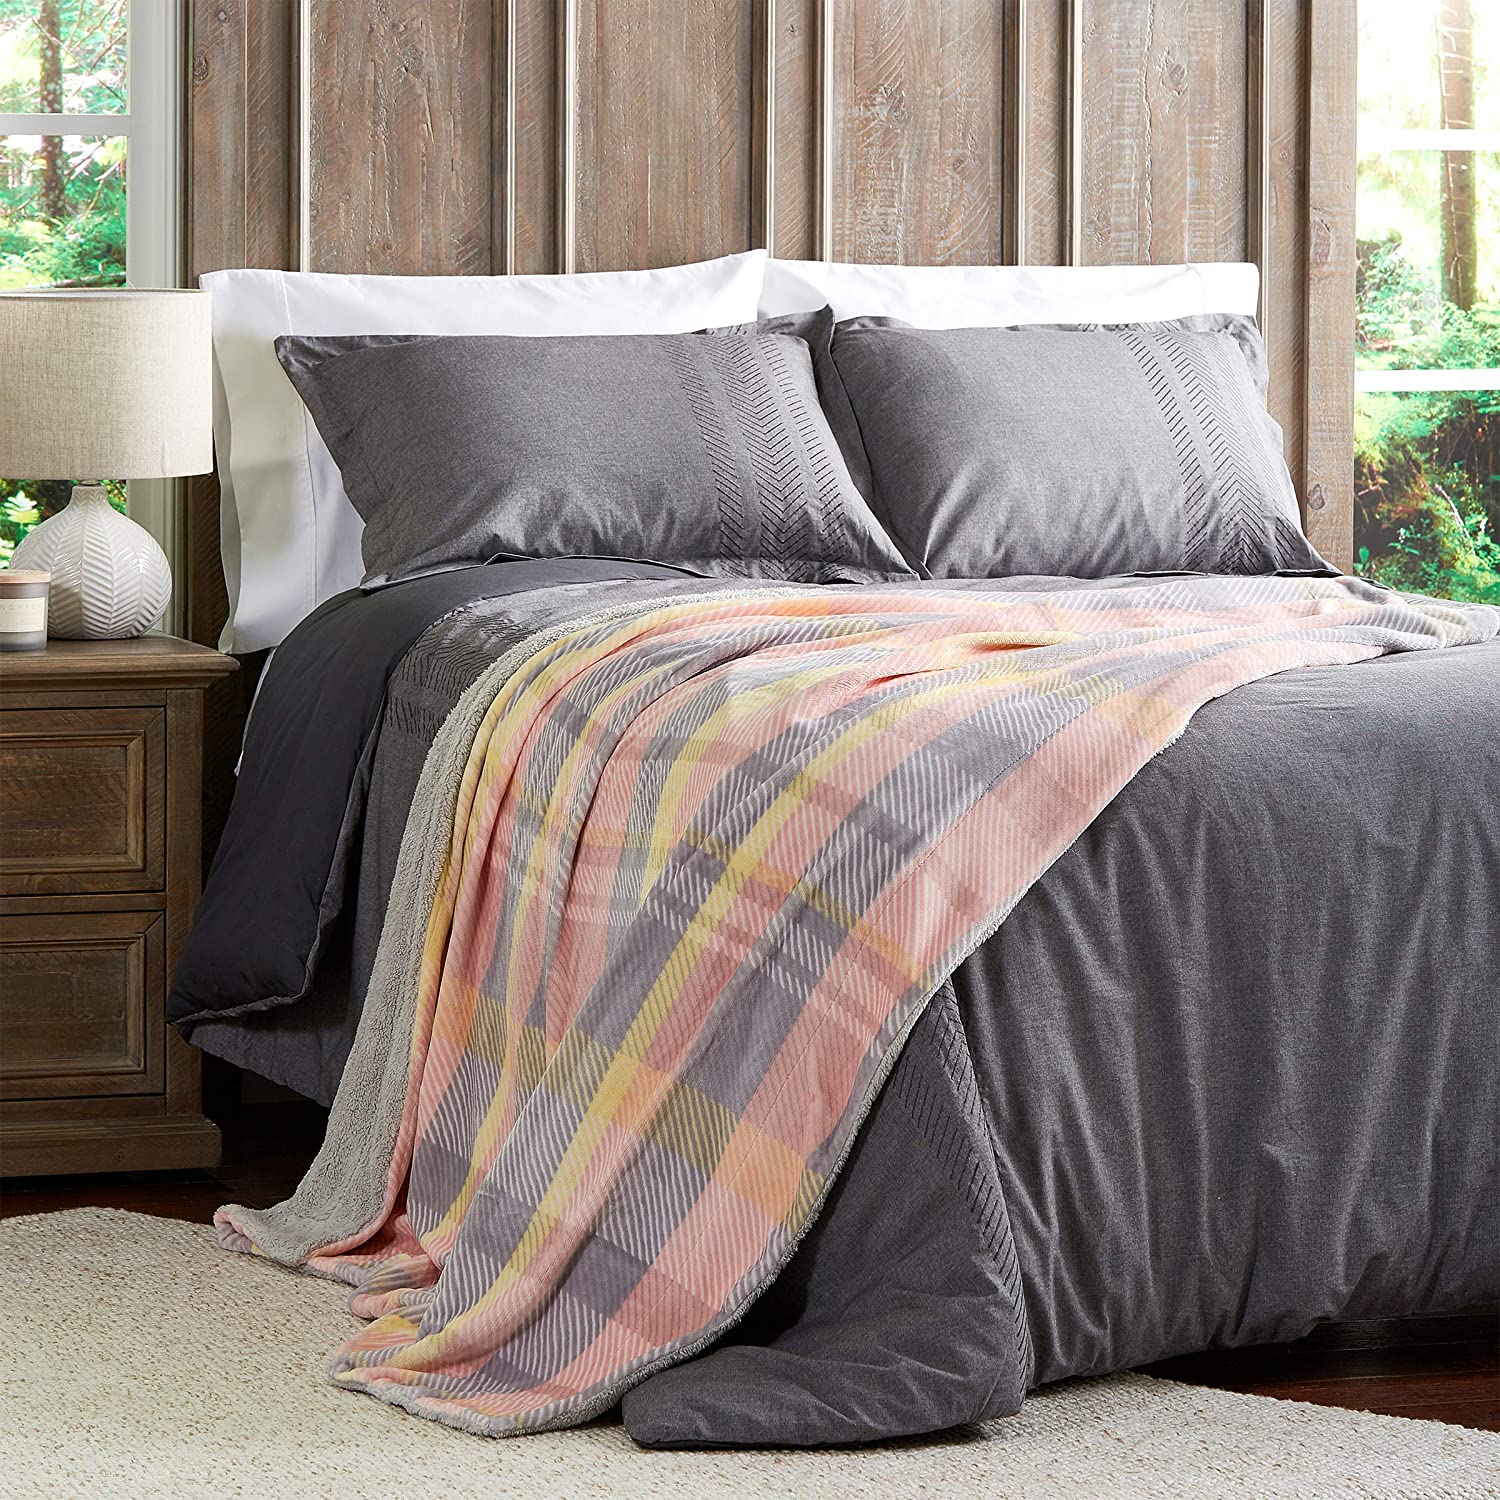 Lavish Home Collection Blanket Oversized Plush Woven Polyester Sherpa Fleece Plaid Throw Breathable and Machine Washable Modern Blush